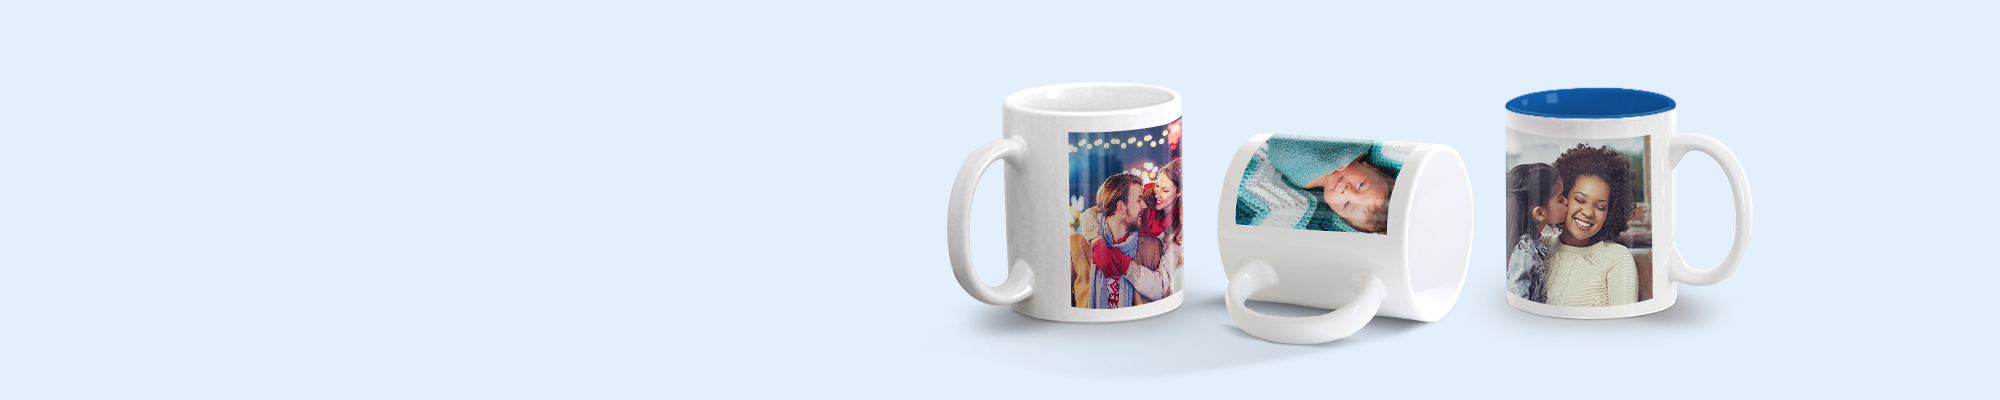 Photo Mugs : Create your very own photo mug or make one for your loved ones